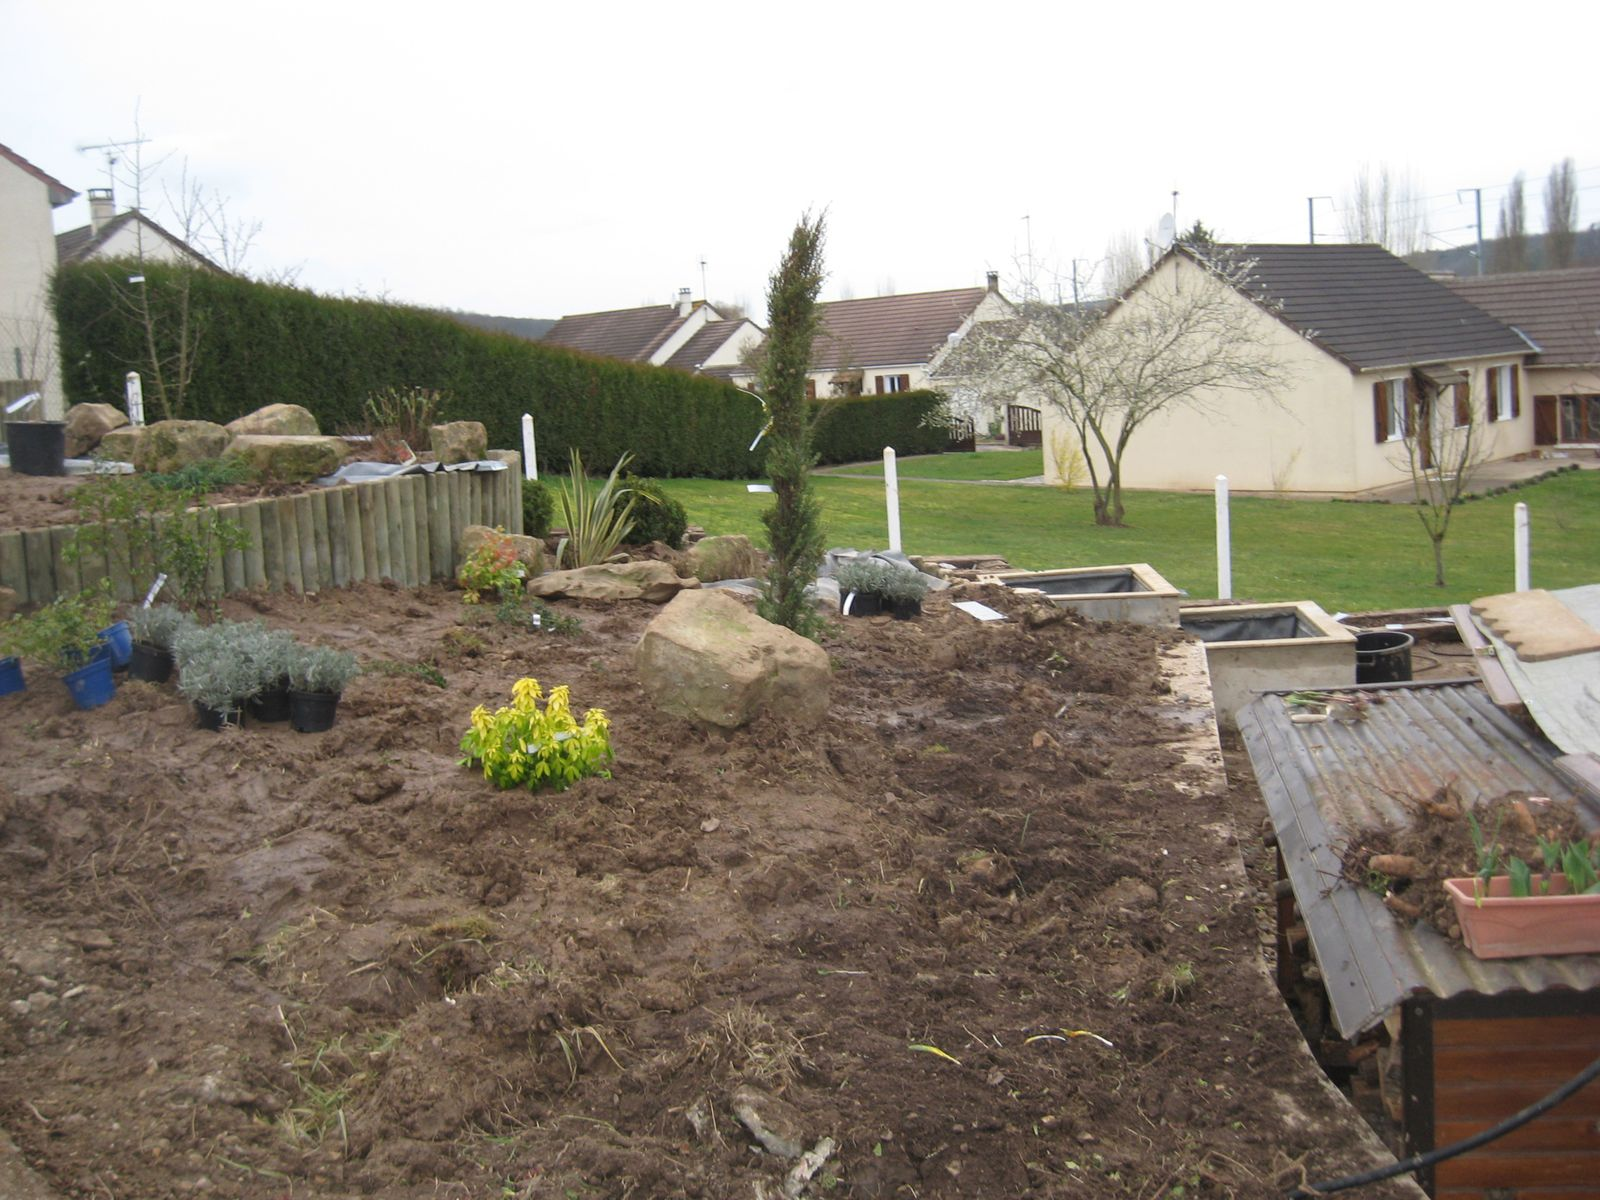 Album amenagement d une rocaille en pente avec des for Amenagement piscine terrain en pente